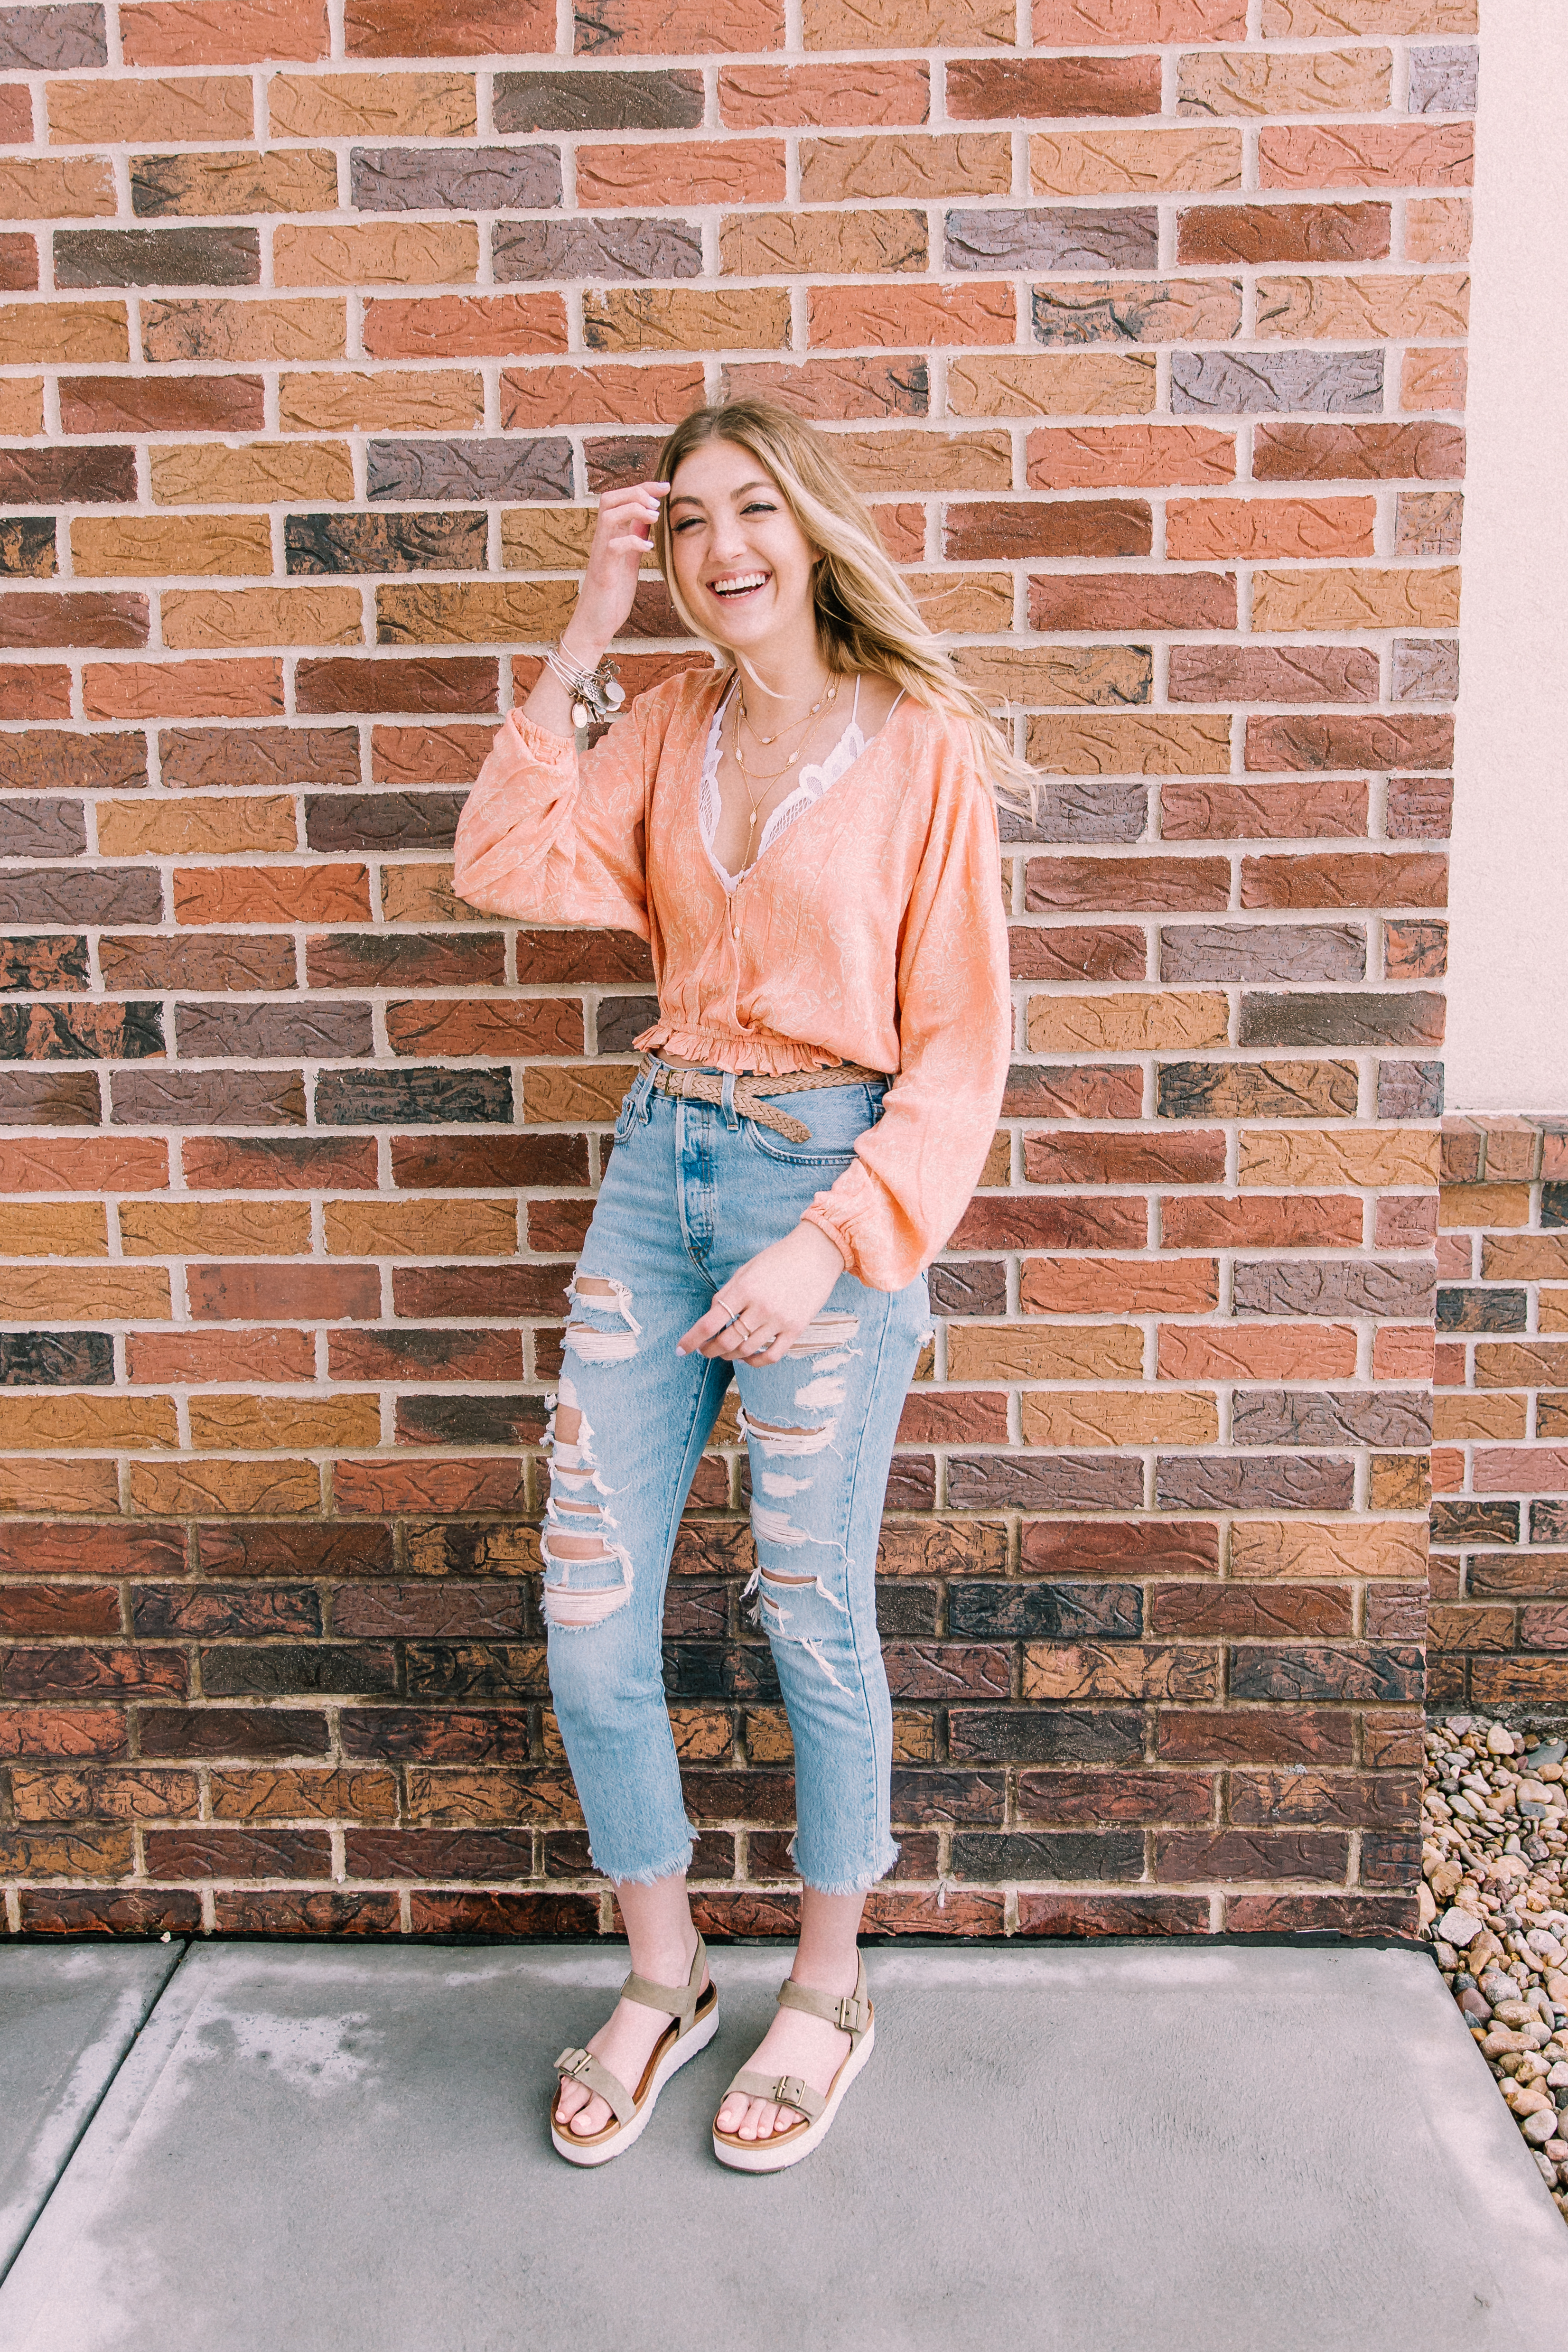 Woman wearing an Amuse Society coral fashion top with a white lace Free People bralette, beige braided belt, destroyed light wash Levi's 501 cropped skinny jeans, and taupe platform sandals from Ugg.